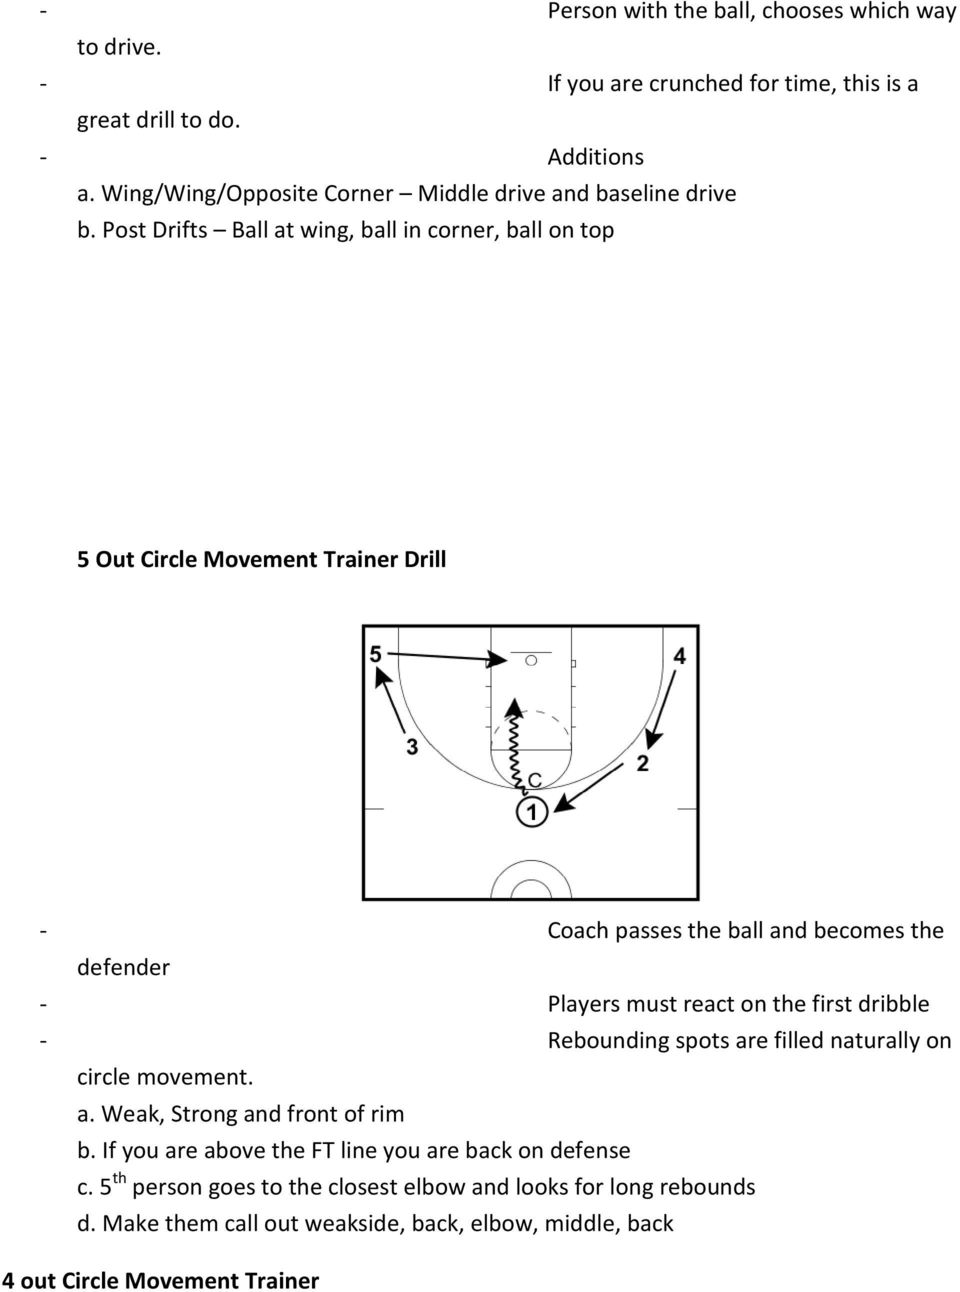 Post Drifts Ball at wing, ball in corner, ball on top 5 Out Circle Movement Trainer Drill - Coach passes the ball and becomes the defender - Players must react on the